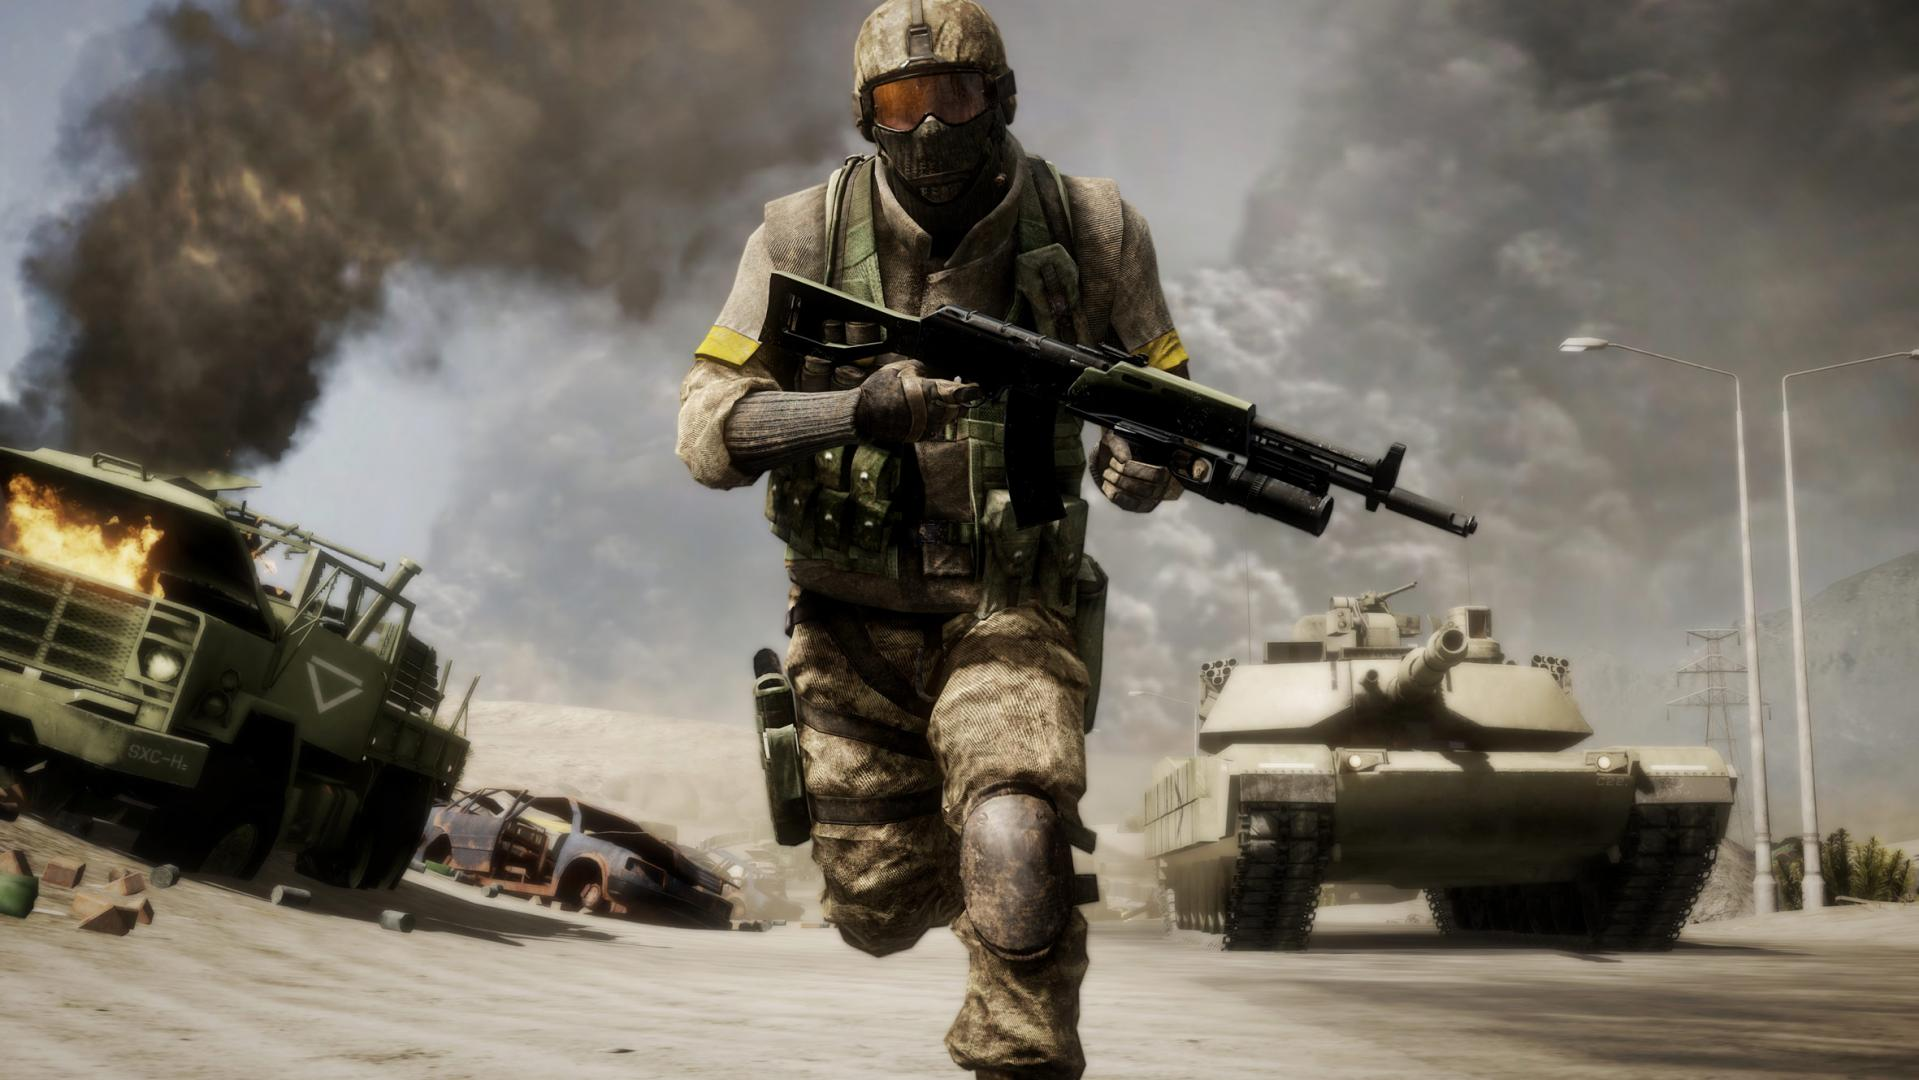 Battlefield Bad Company 2 steam